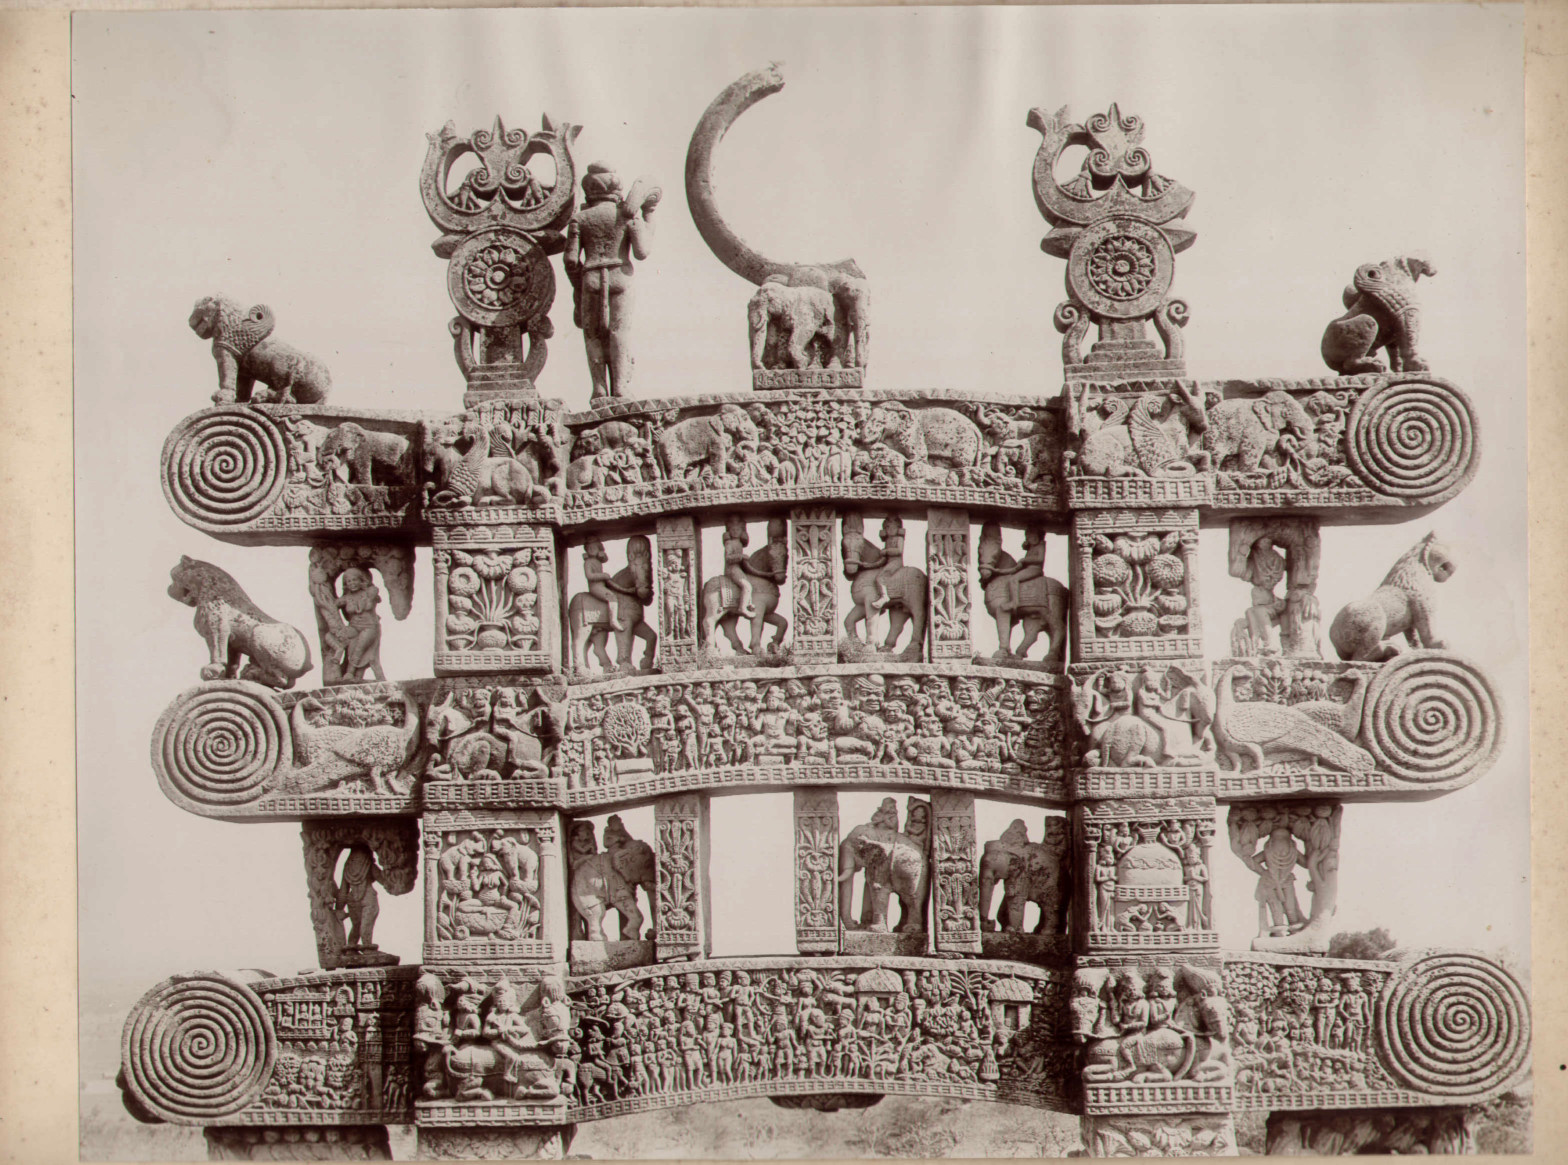 Carved Gateway of Sanchi Stupa, Madhya Pradesh - c1910